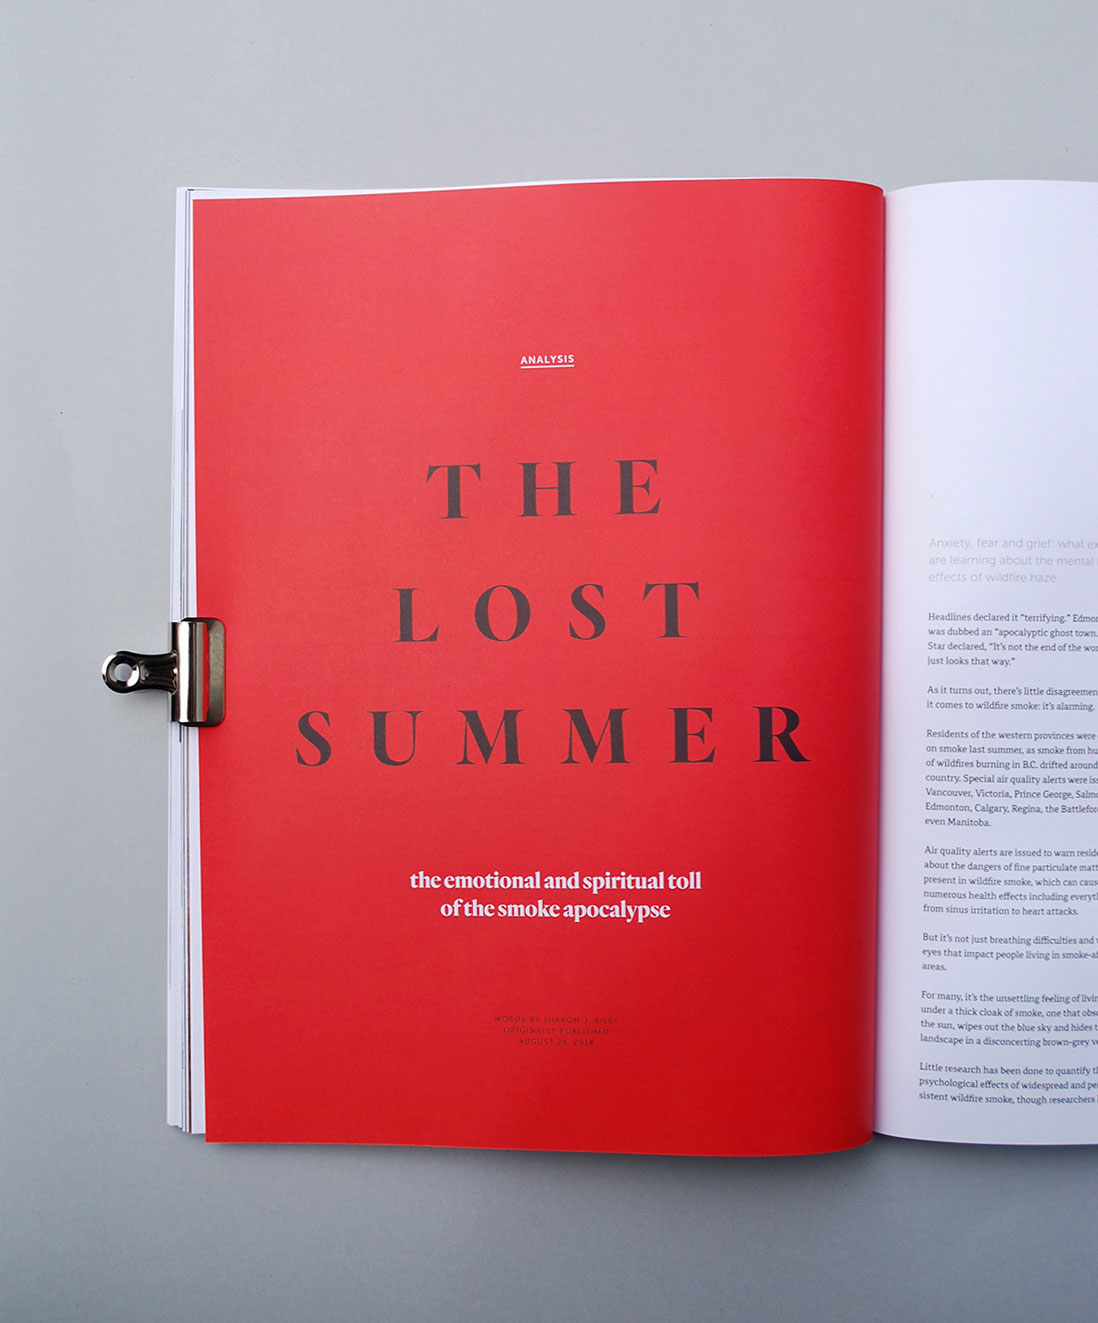 The Narwhal Magazine, full-colour red introduction spread, editorial design, The Lost Summer | www.alicia-carvalho.com